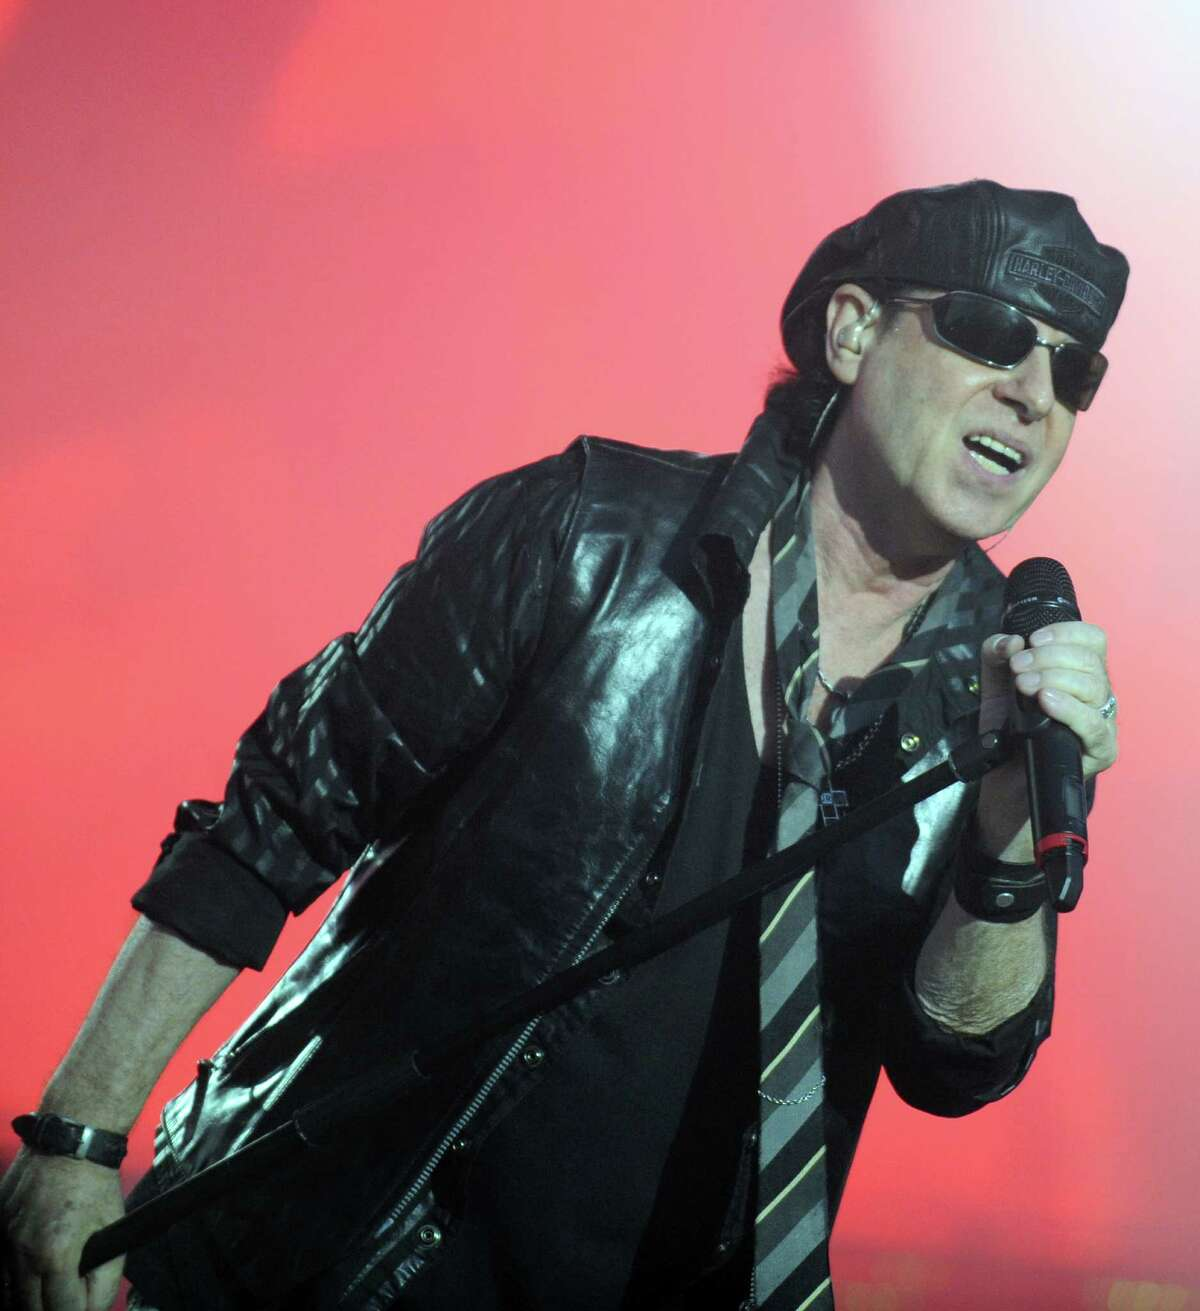 Klaus Meine will keep Scorpions on the road as long as this crazy world needs them.